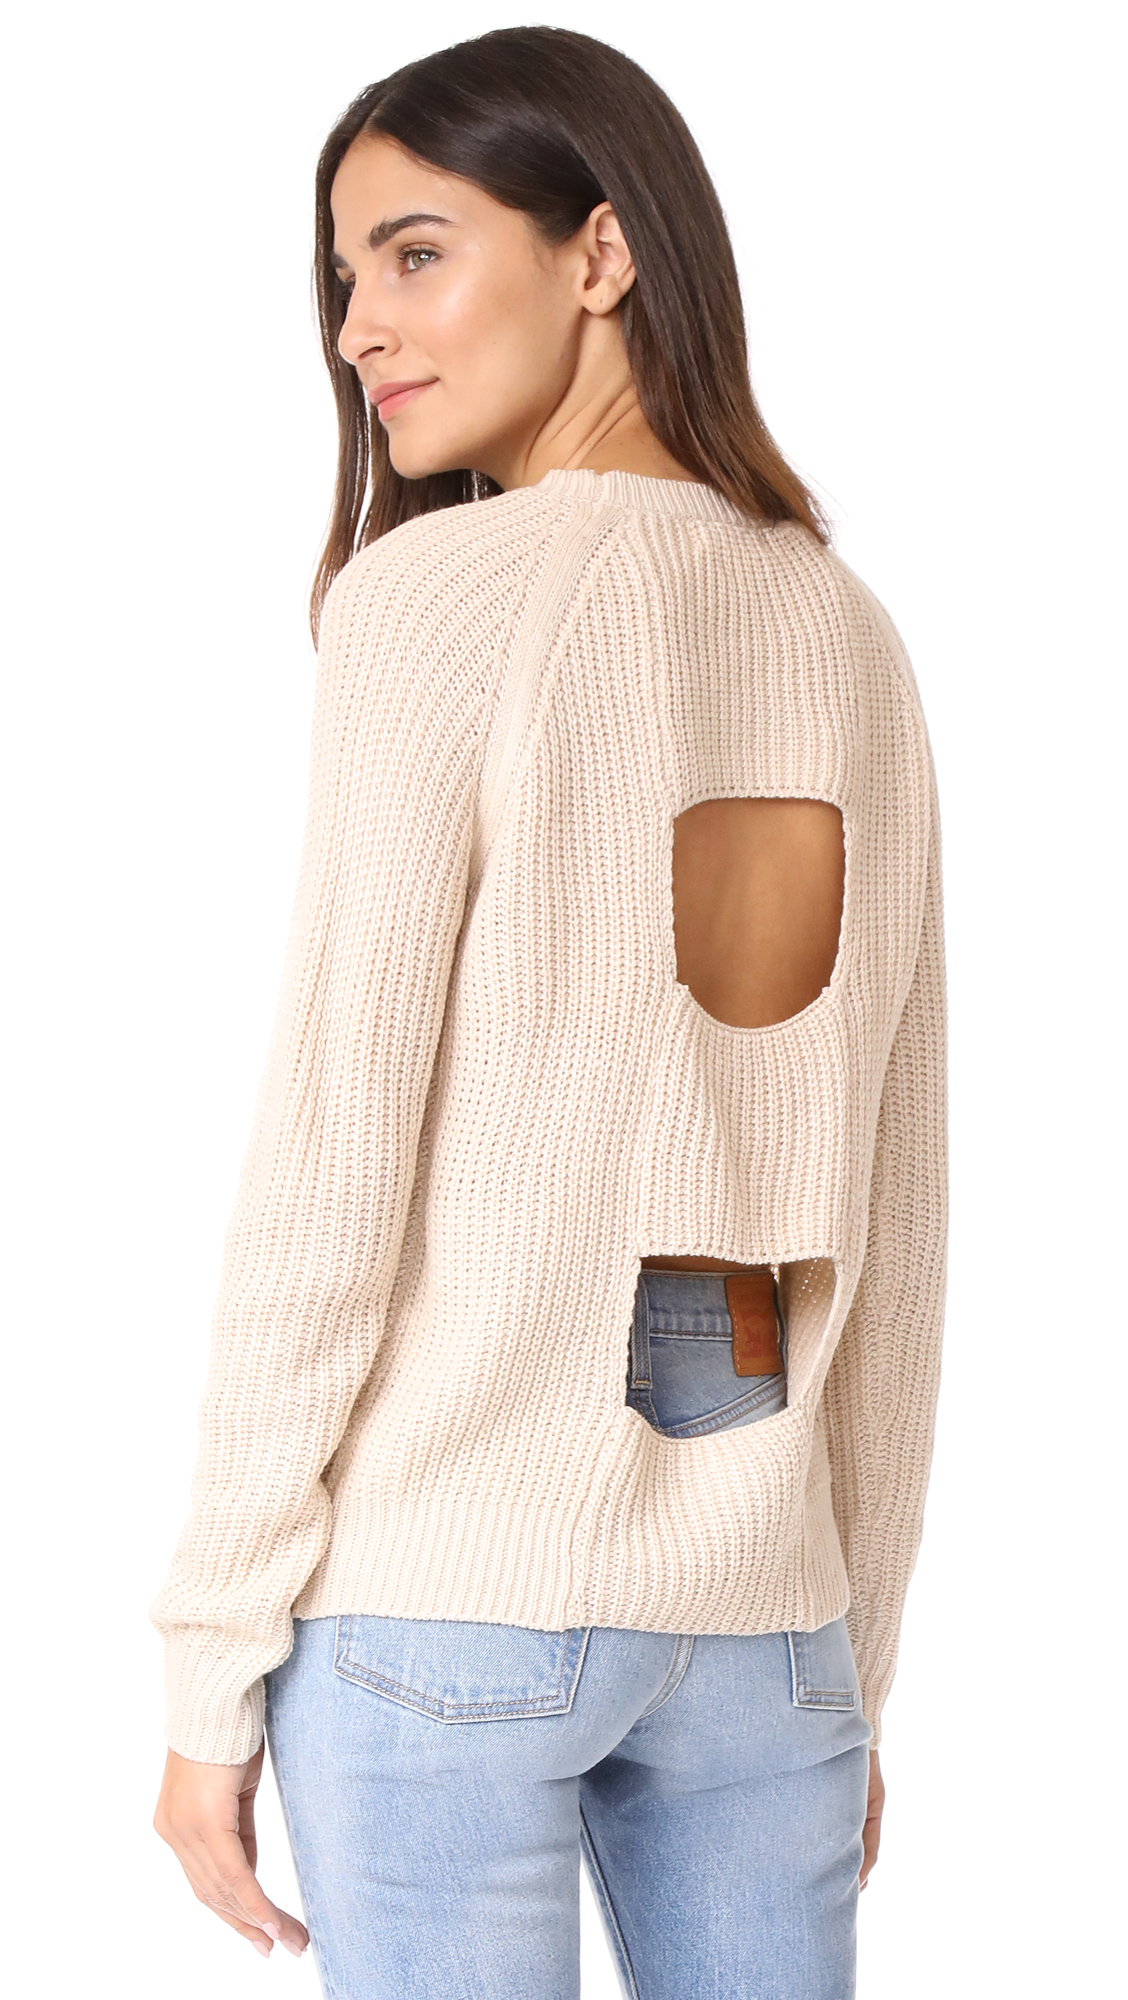 Jack by BB Dakota Percival Sweater